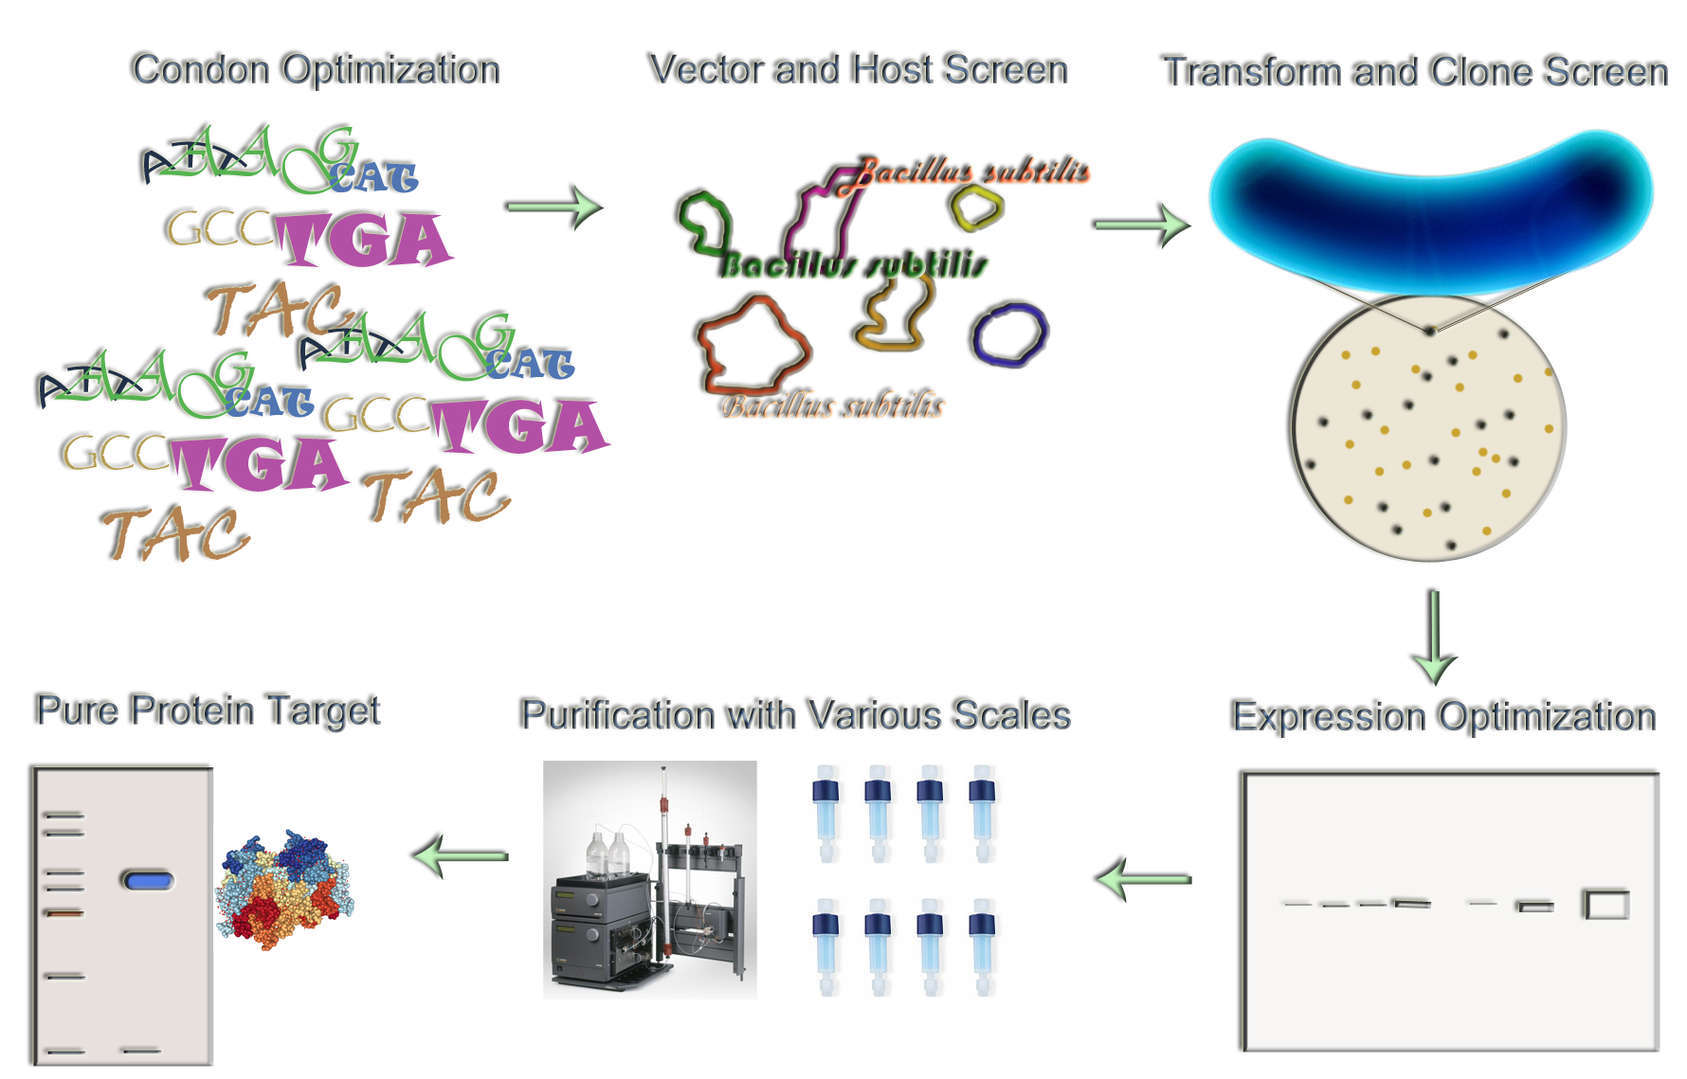 Magic™ Bacillus subtilis Expression Service